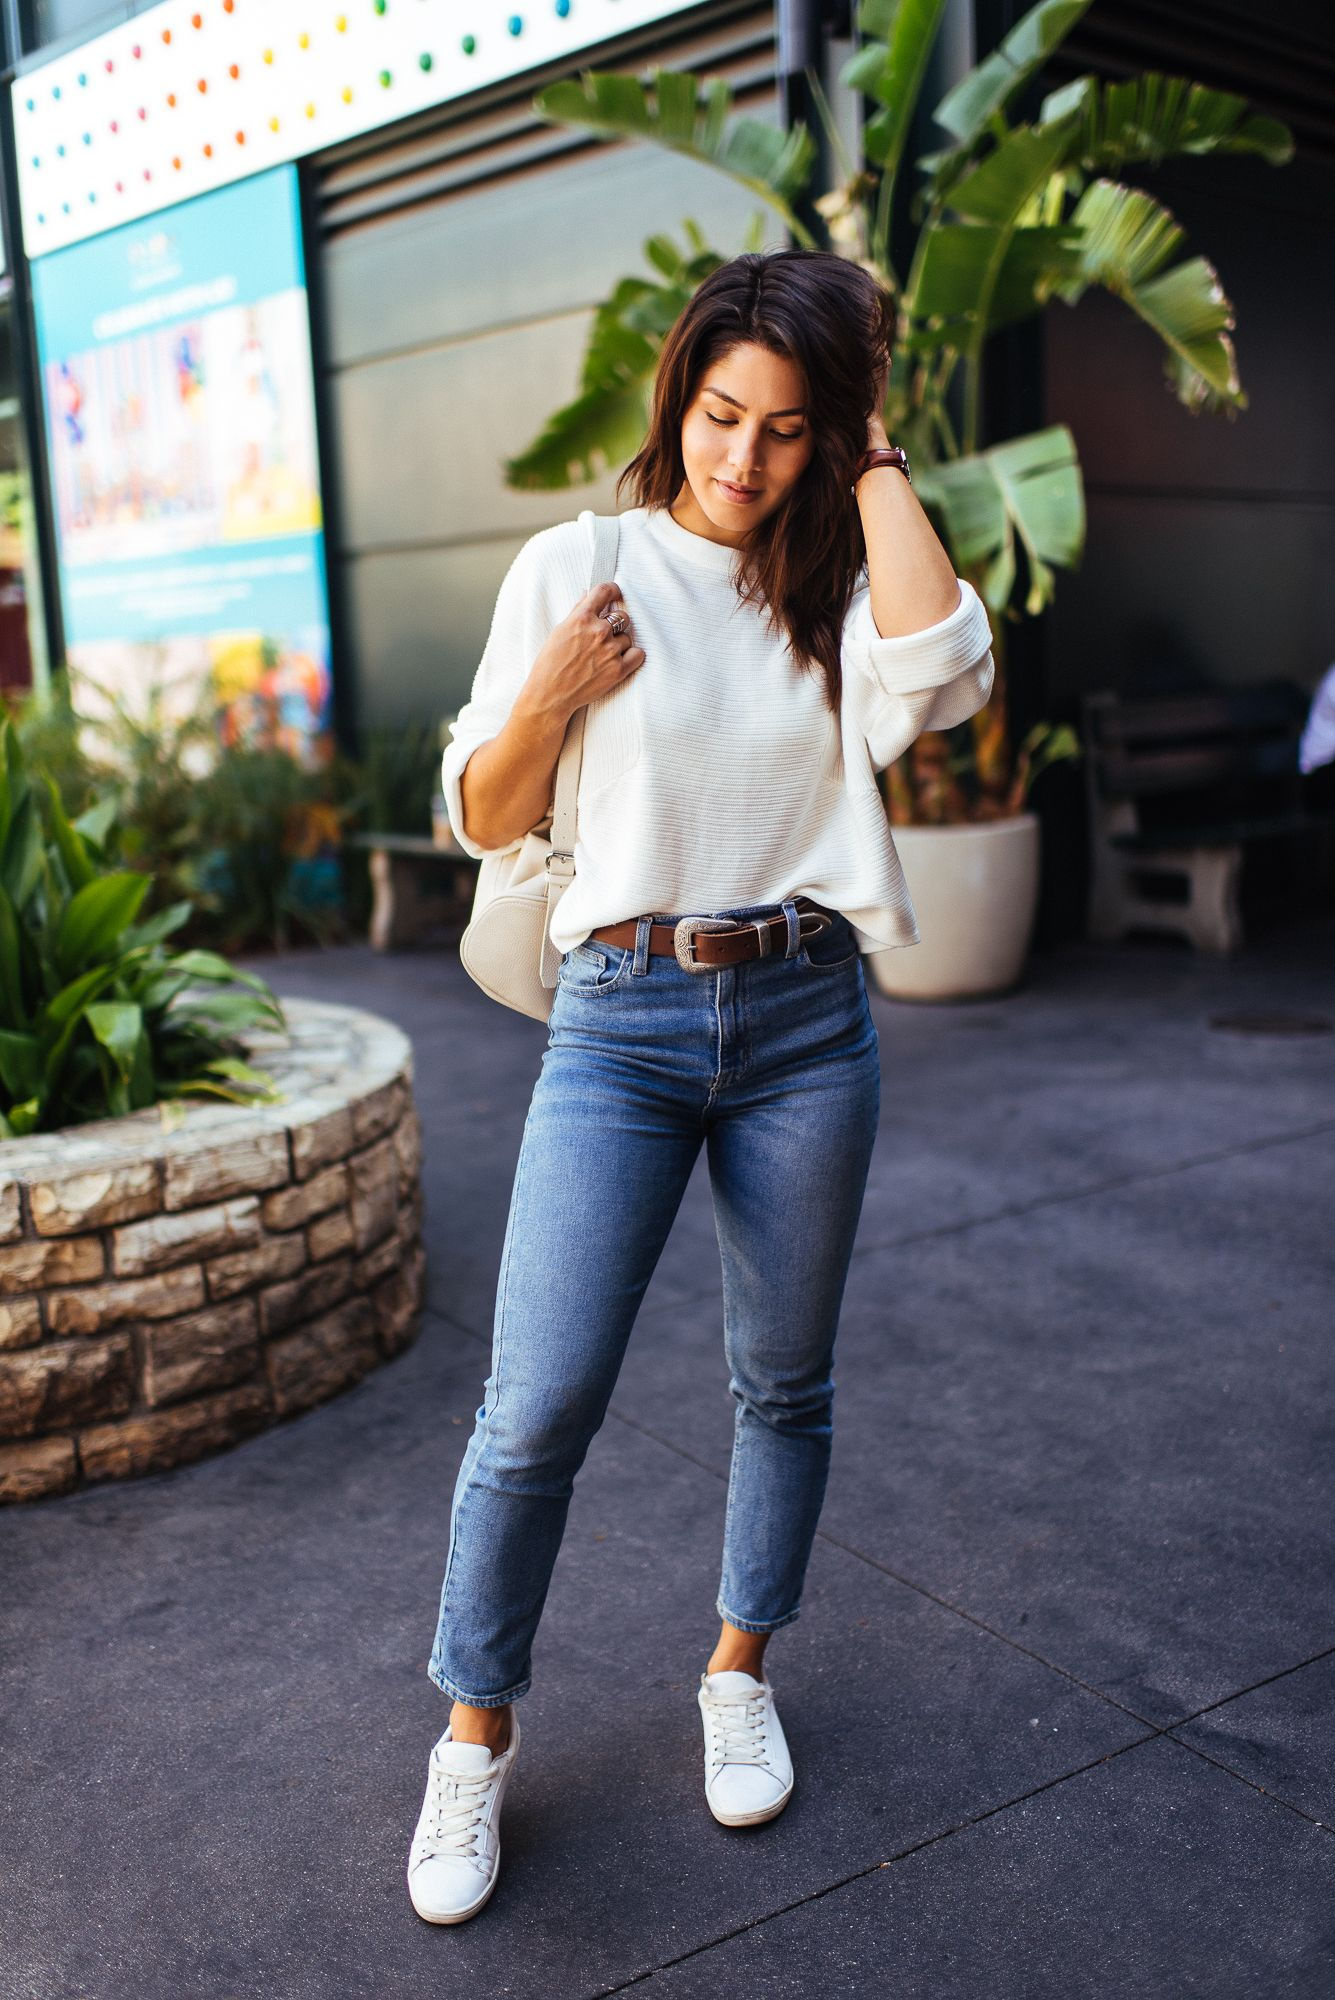 EASY DENIM | Megan Batoon | Daily outfits, Minimal outfit, Boss lady outfit